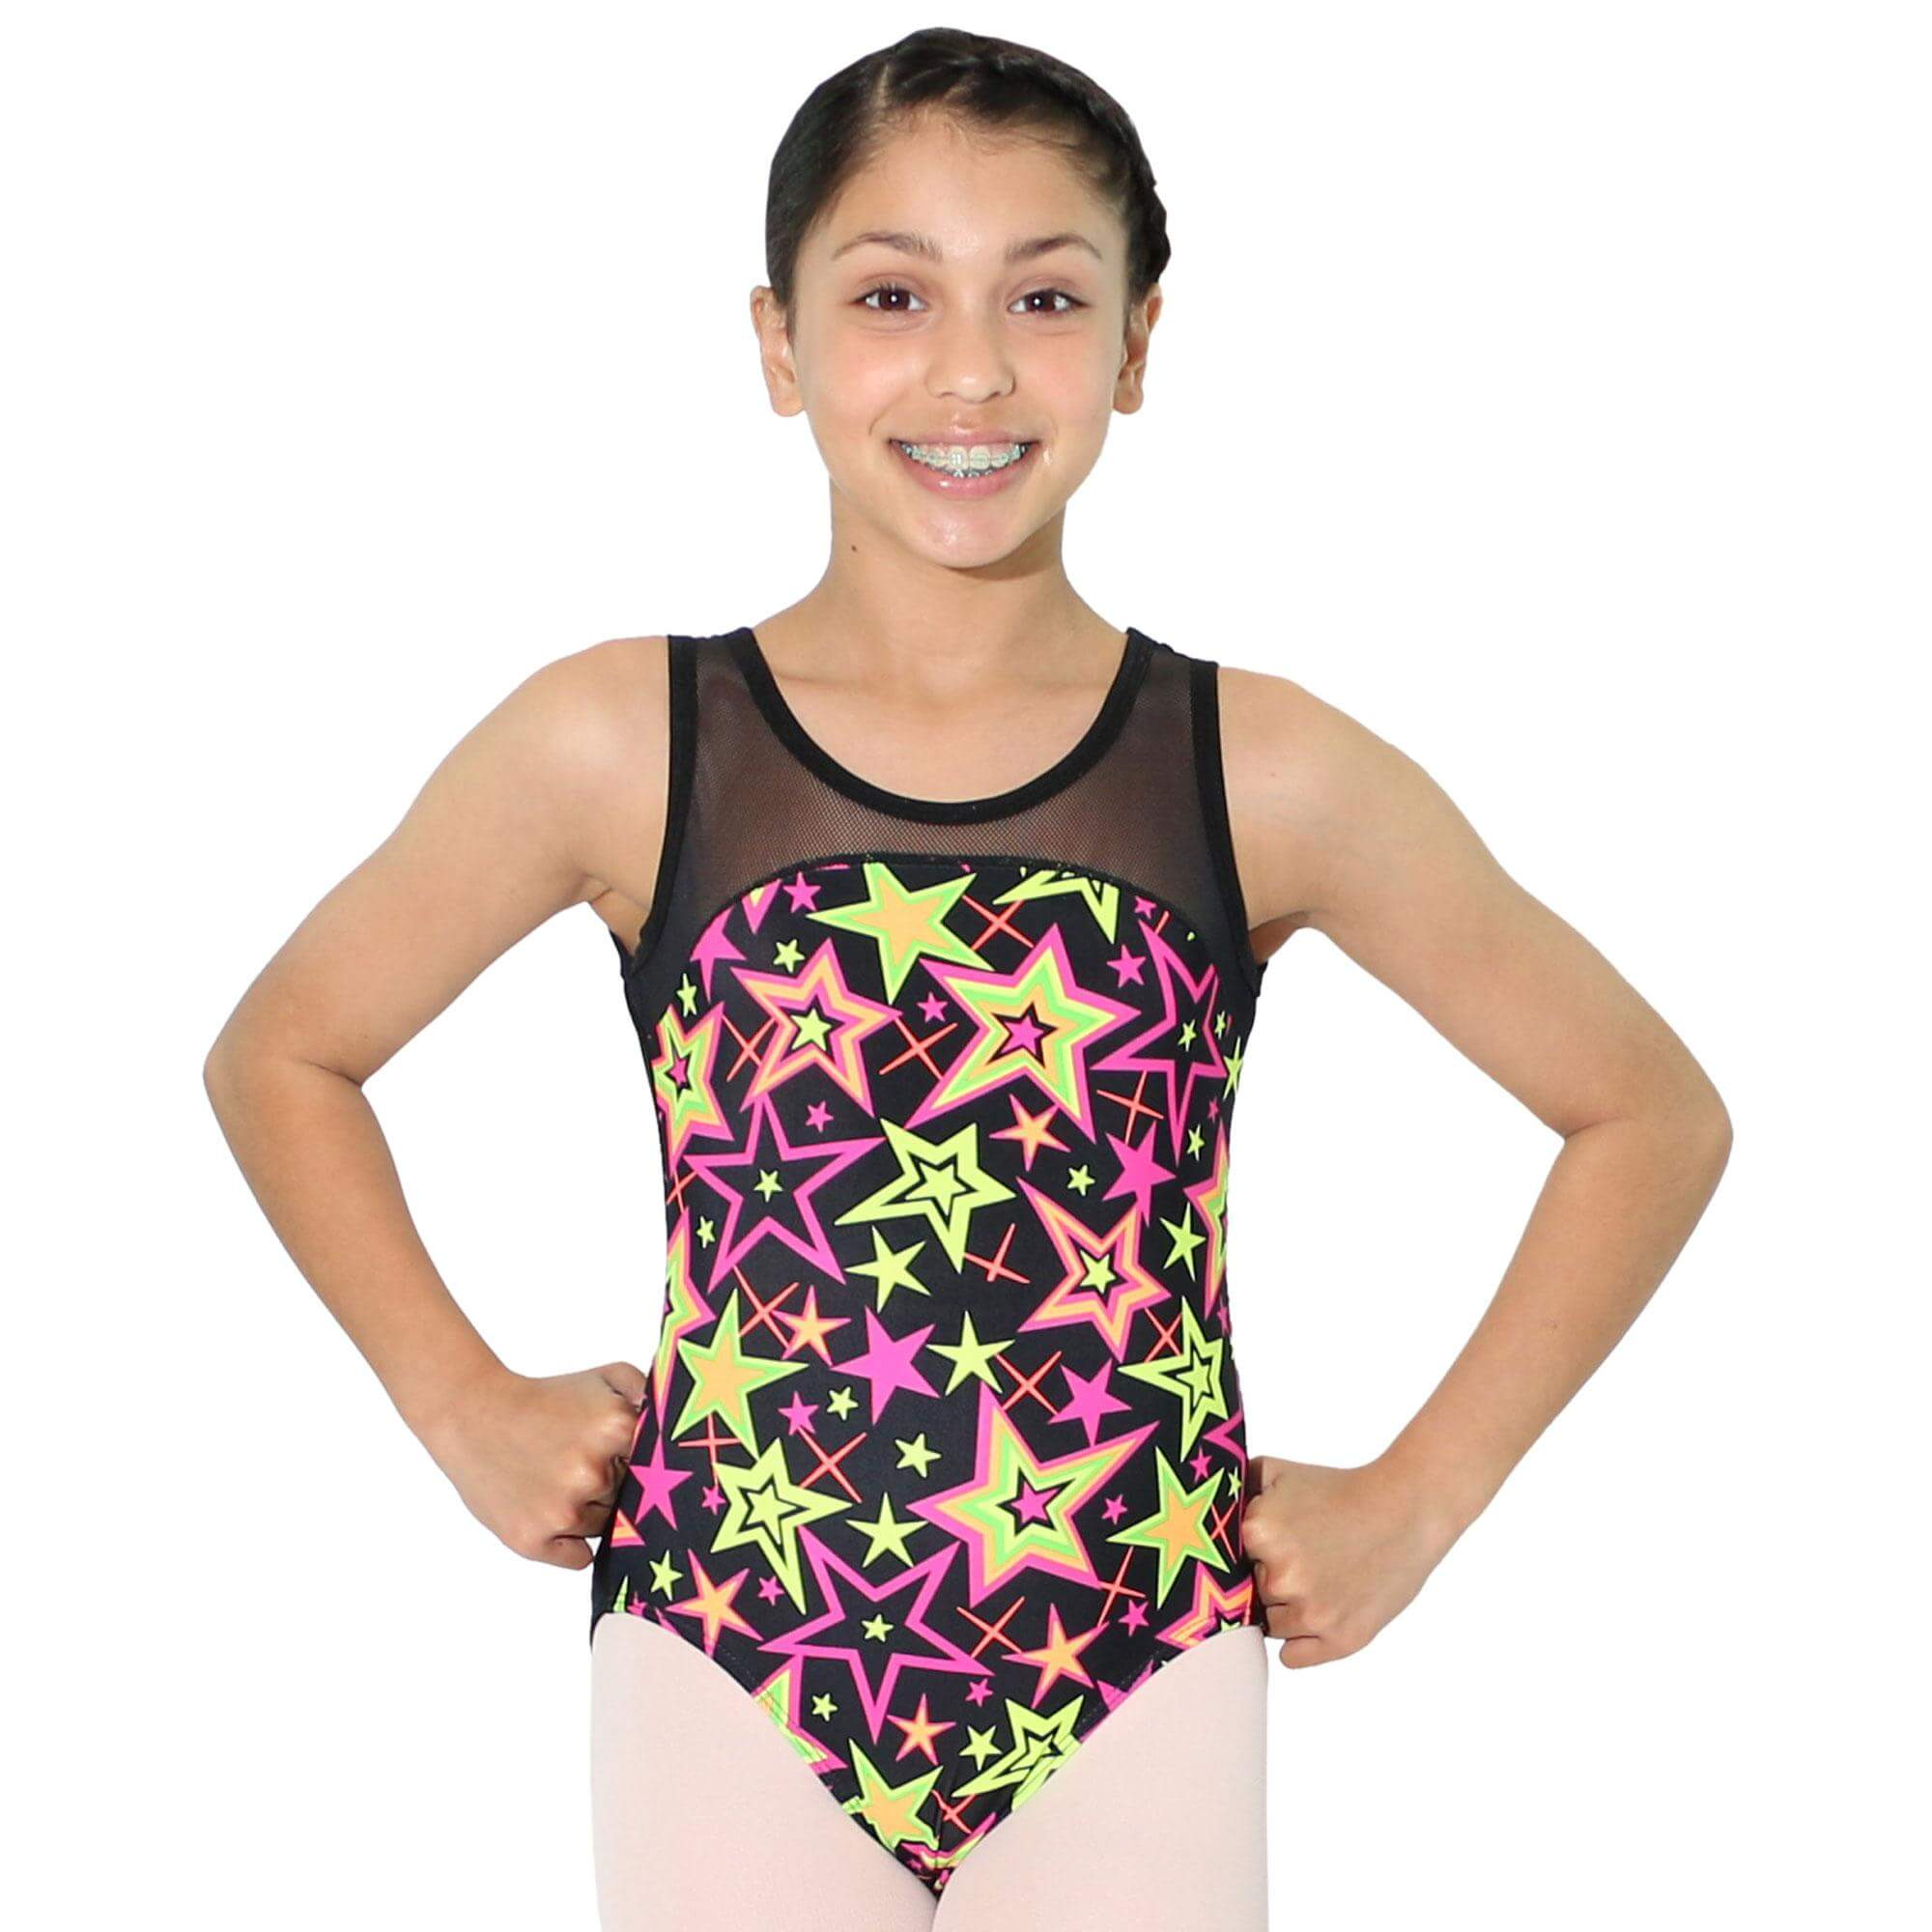 Reflectionz Black Star Leotard